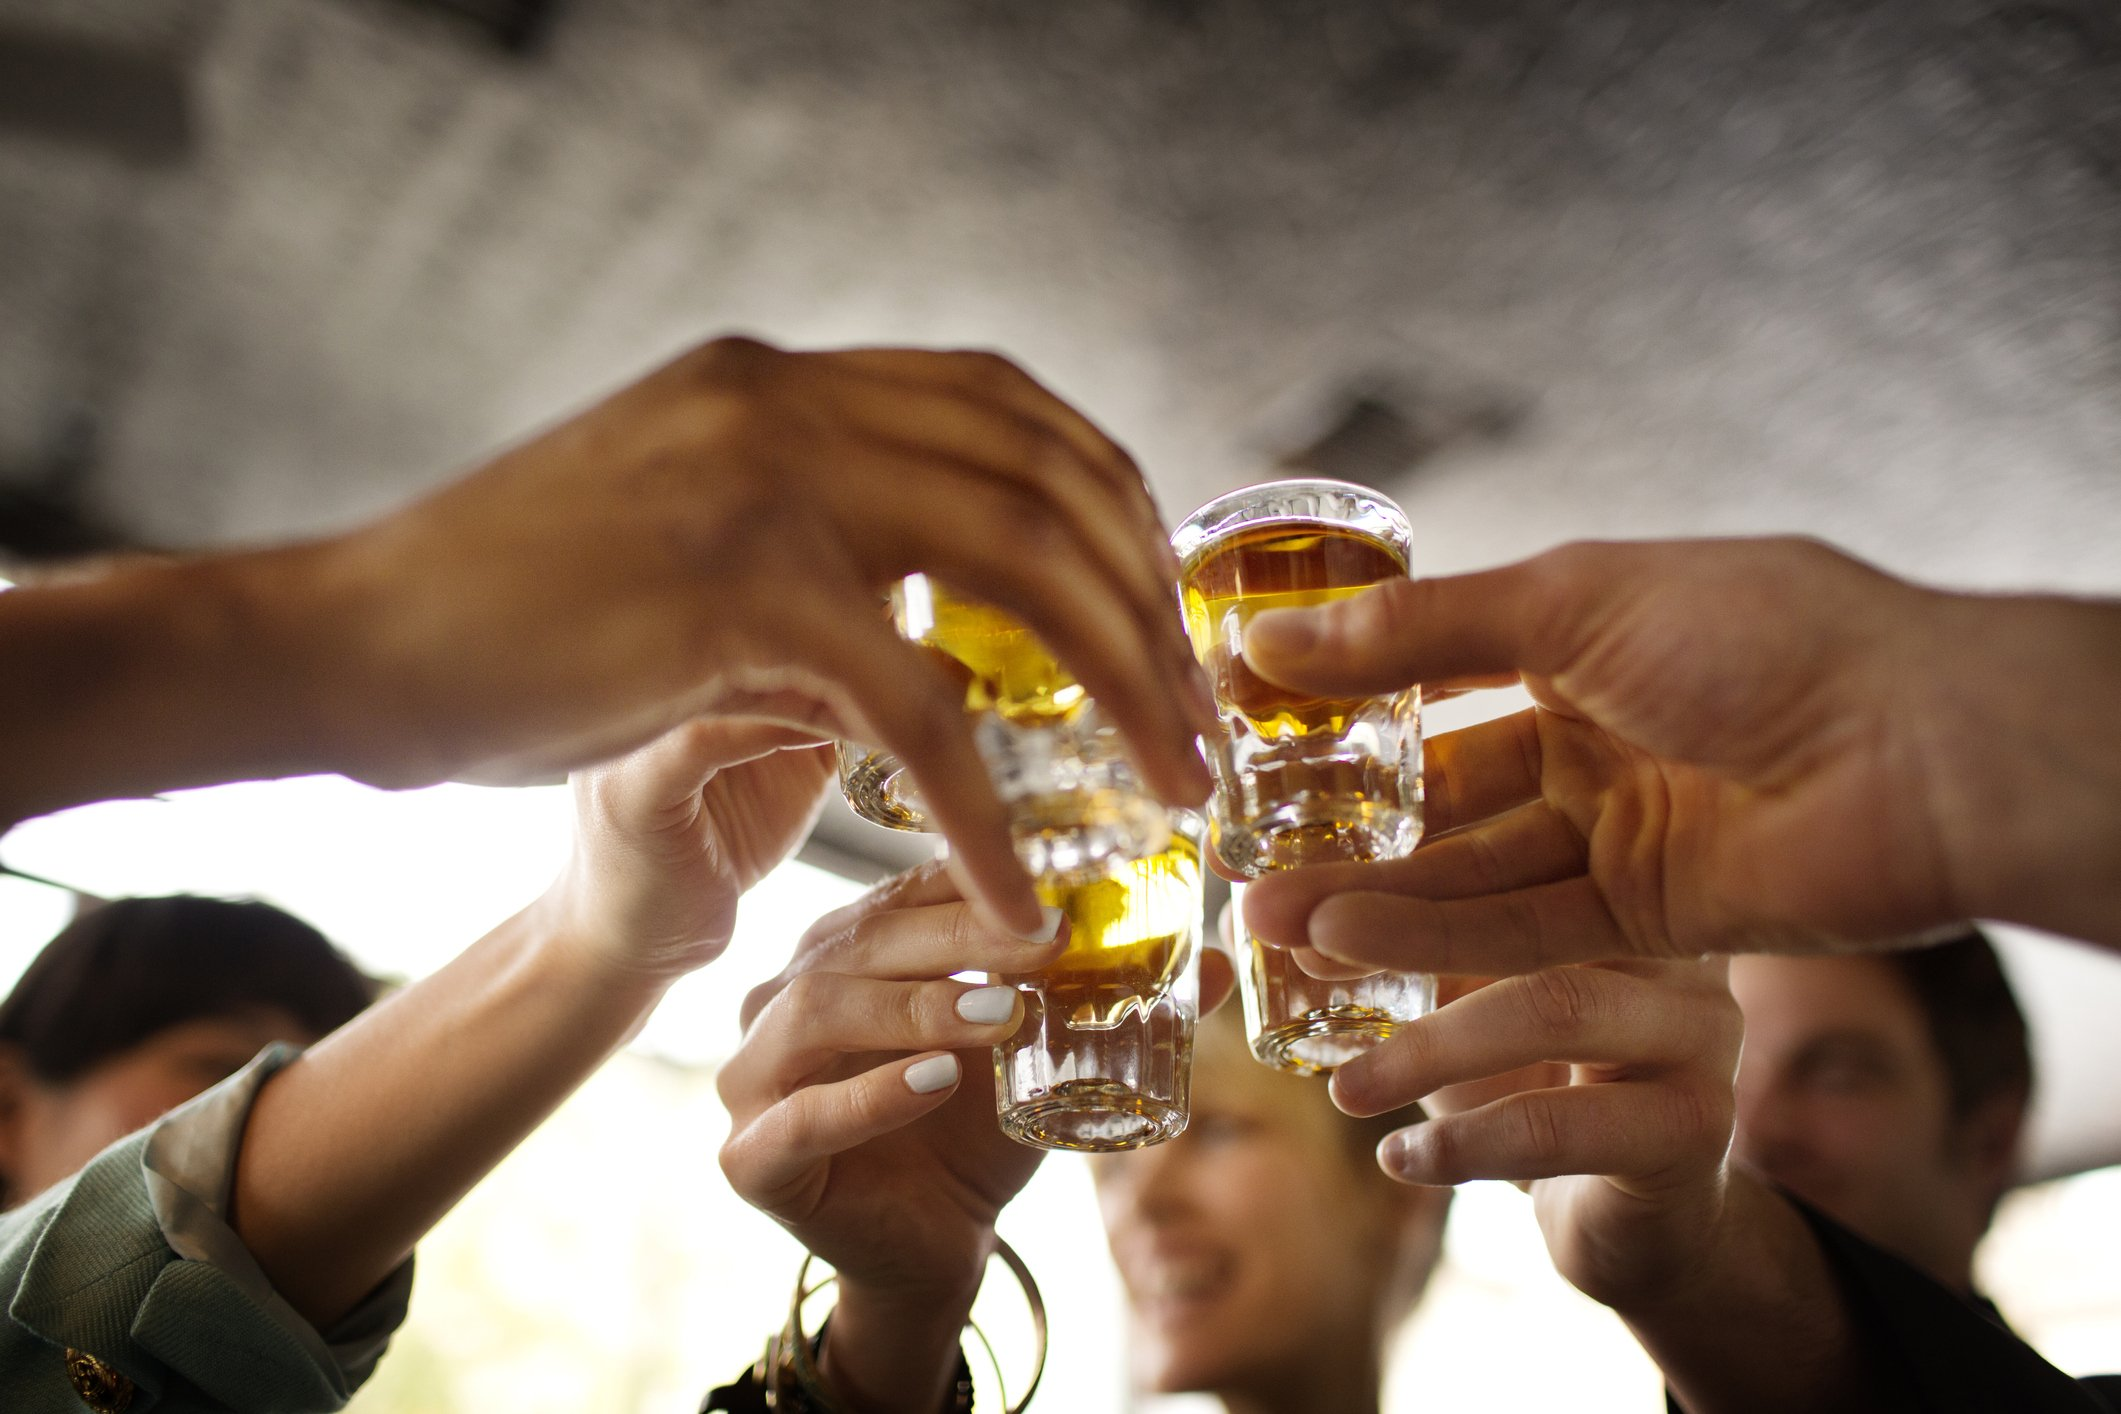 Friends toasting with shots of tequila in a bar. | Photo: Getty Images